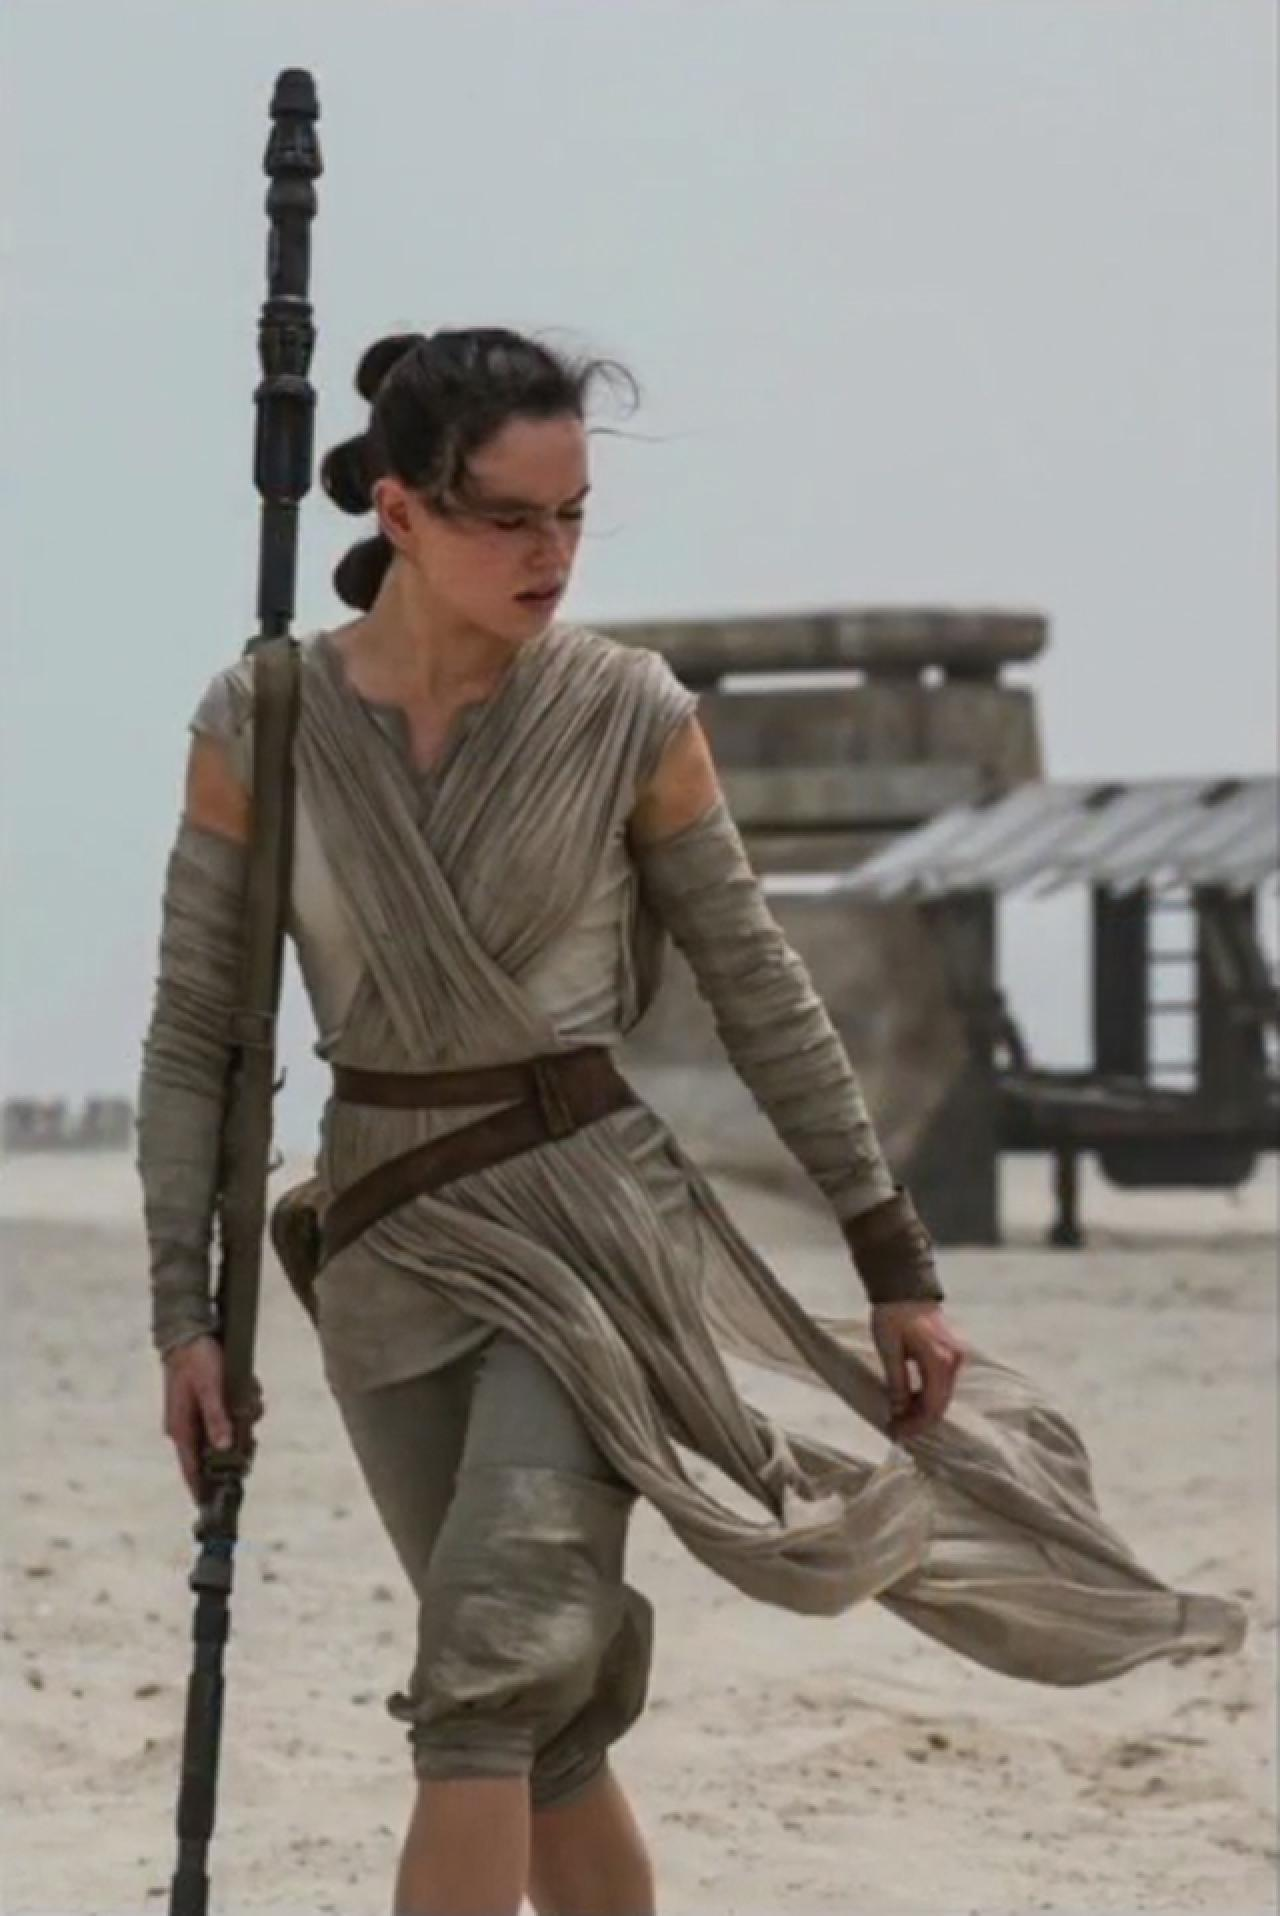 Rey carries a staff, and Daisy Ridley was reportedly trained in bojitsu for her fight scenes.